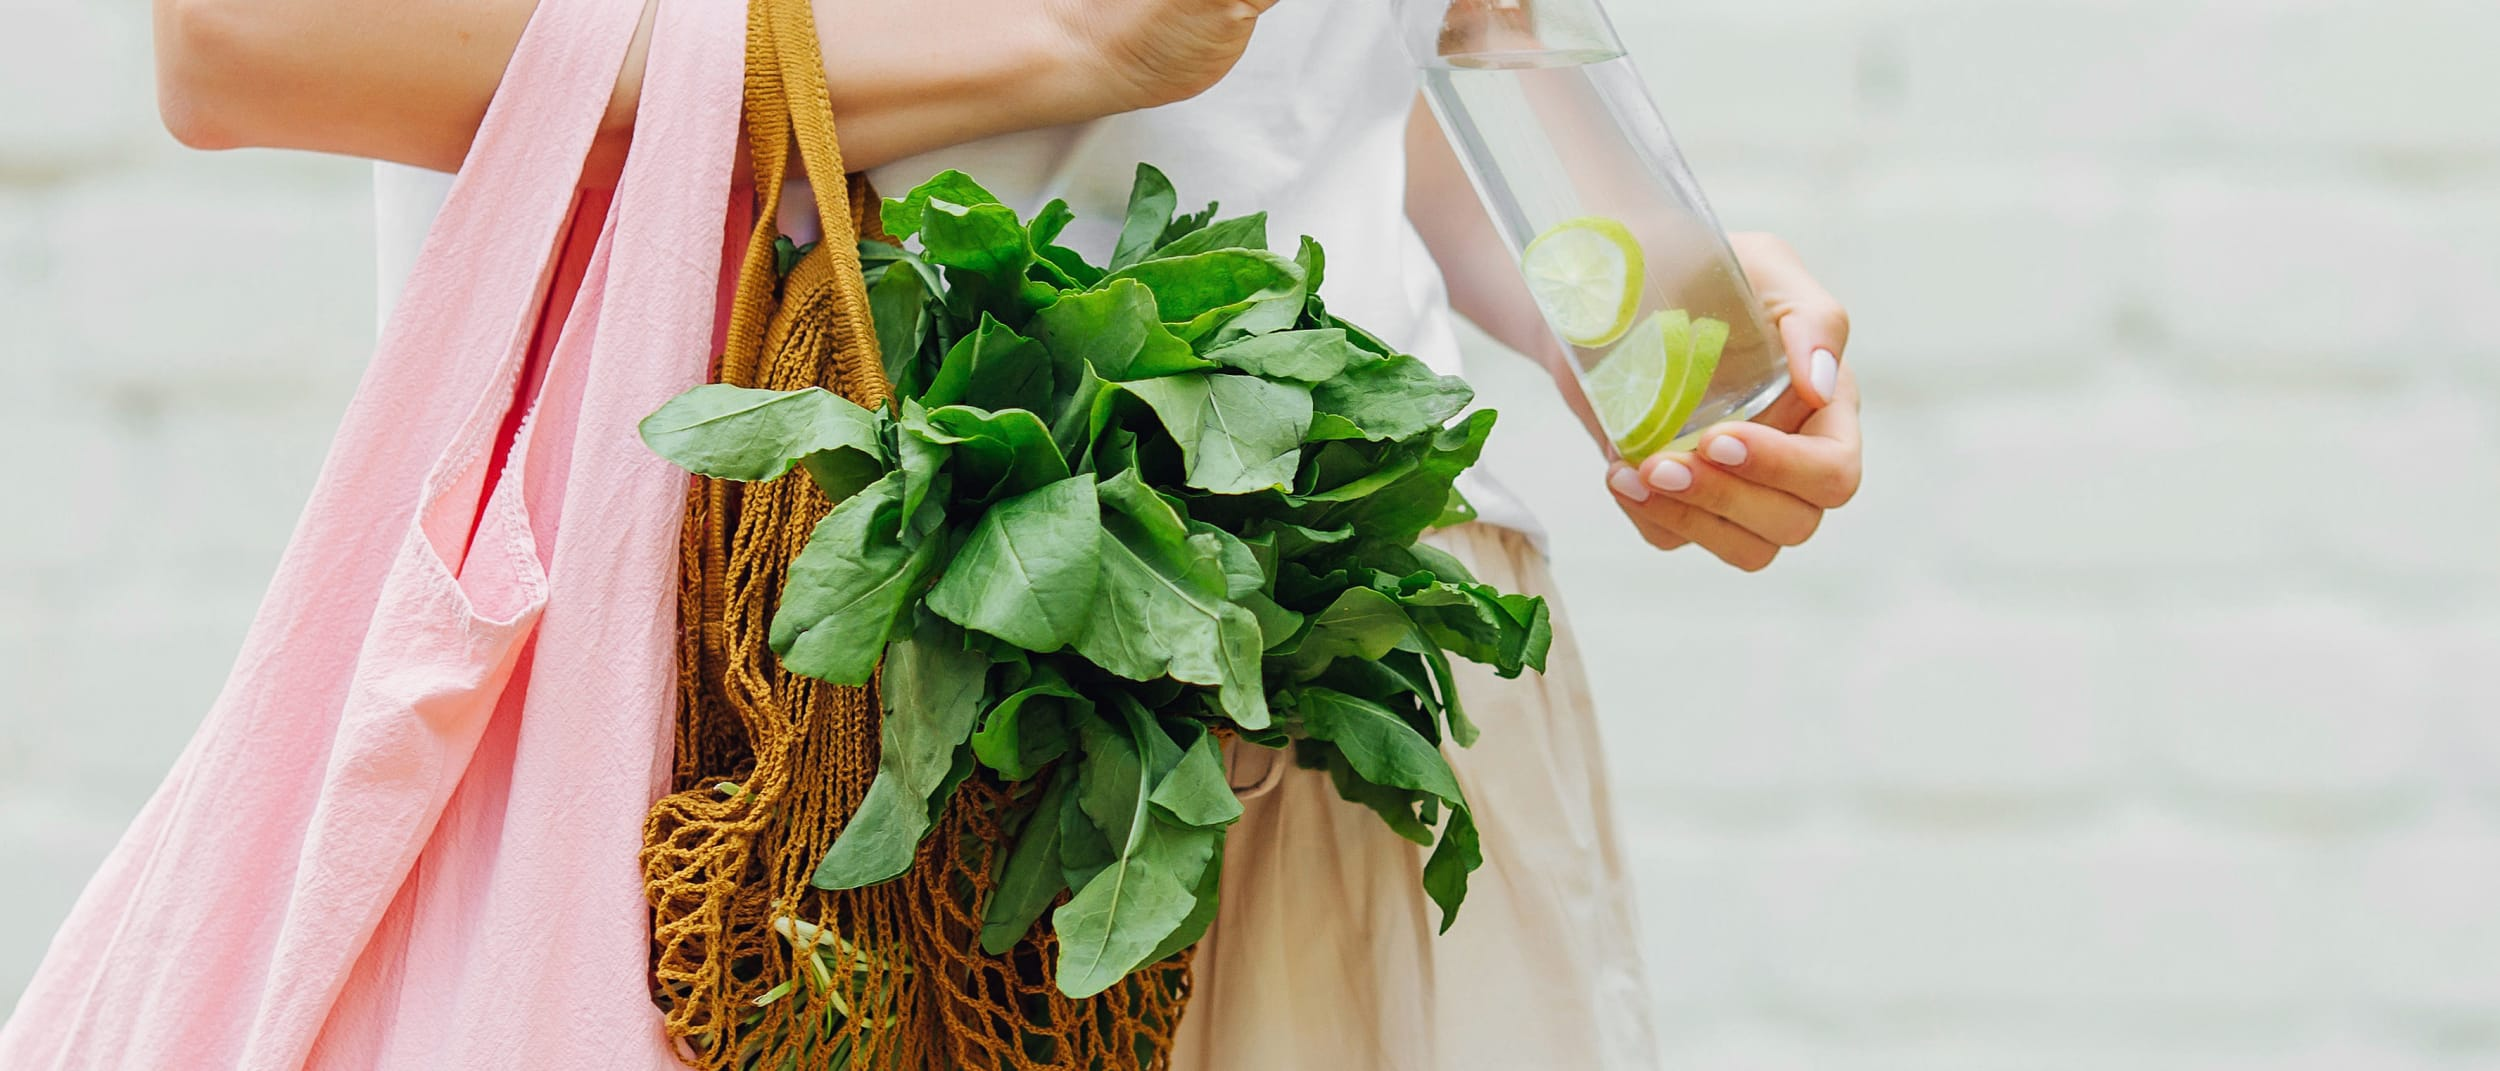 20 stores that are leading the way to a sustainable future